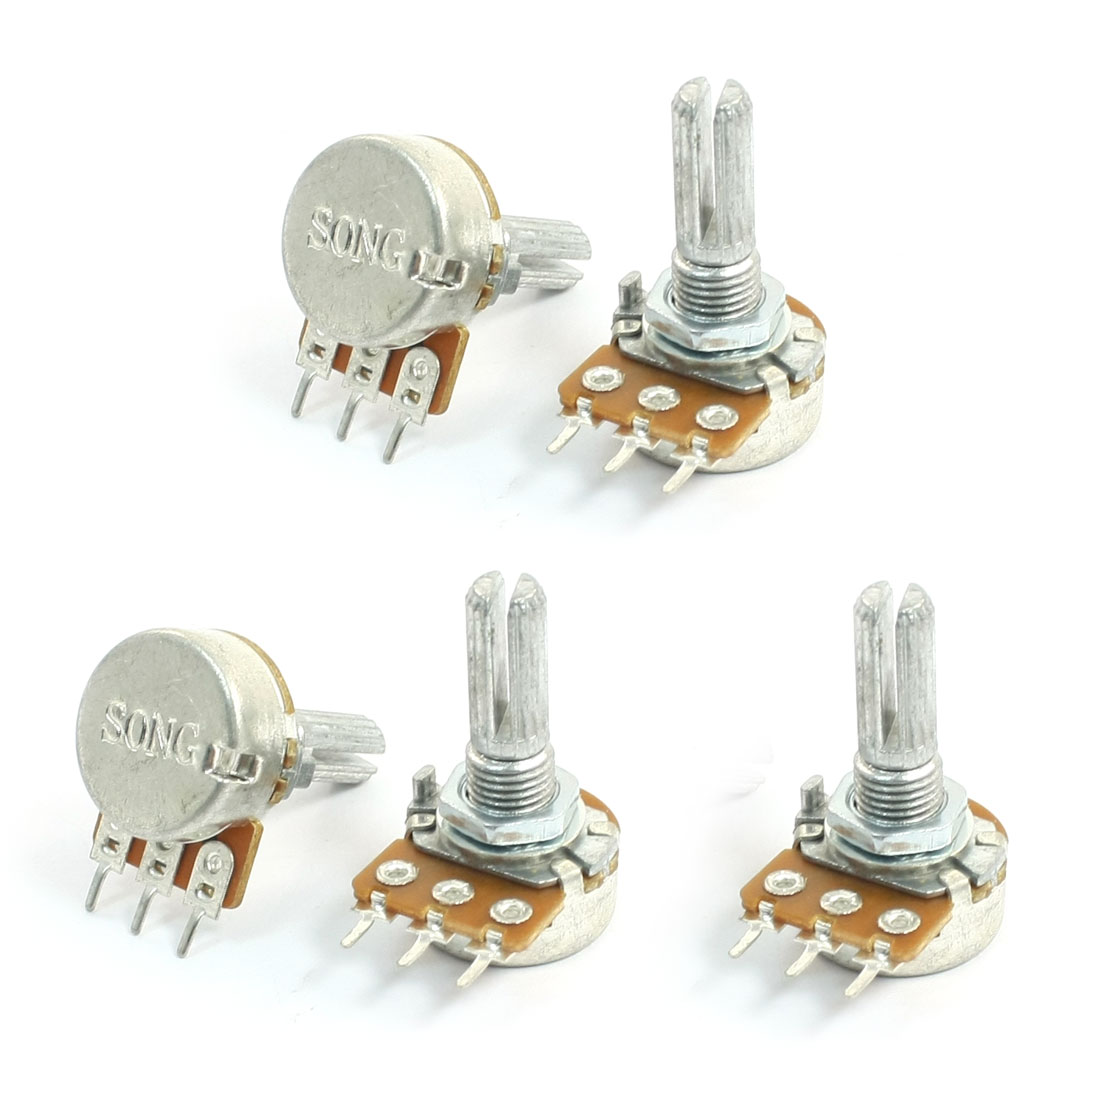 Top Adjustment Single Turn Knurled Shaft 3Pin Potentiometer 10K Ohm 5pcs